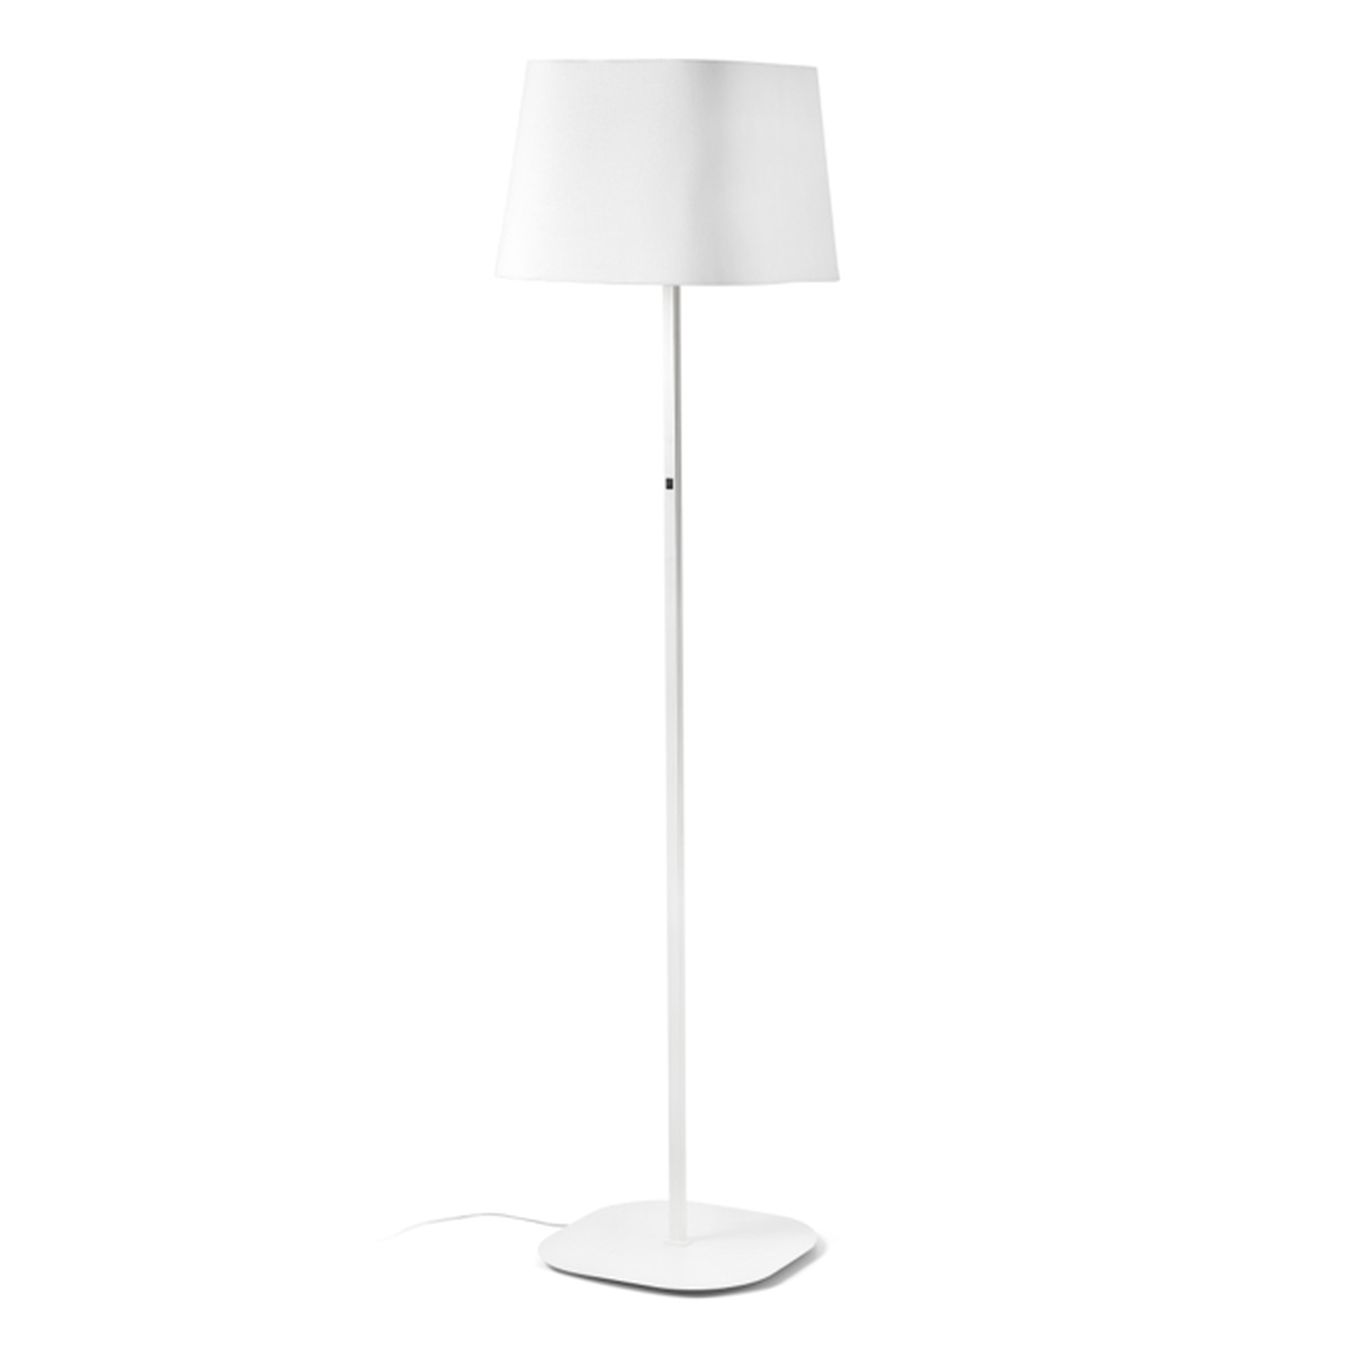 Lamparas Salon Modernas Led Comprar Lámpara De Pie Color Perla Estilo Sobrio Comprar